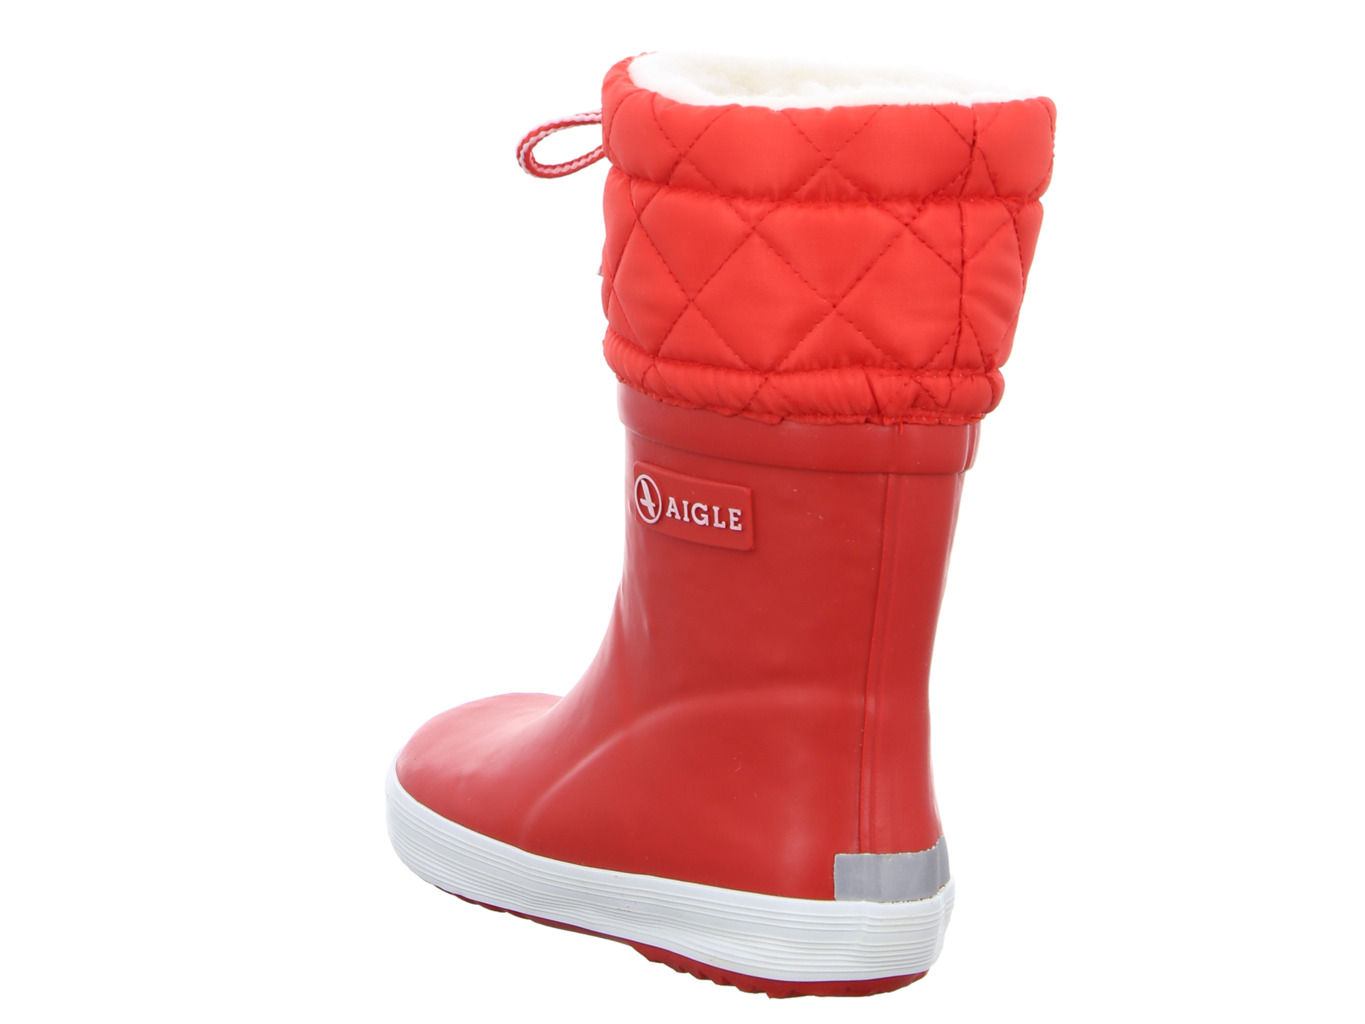 aigle_giboulee_rot_24538_rouge_5108